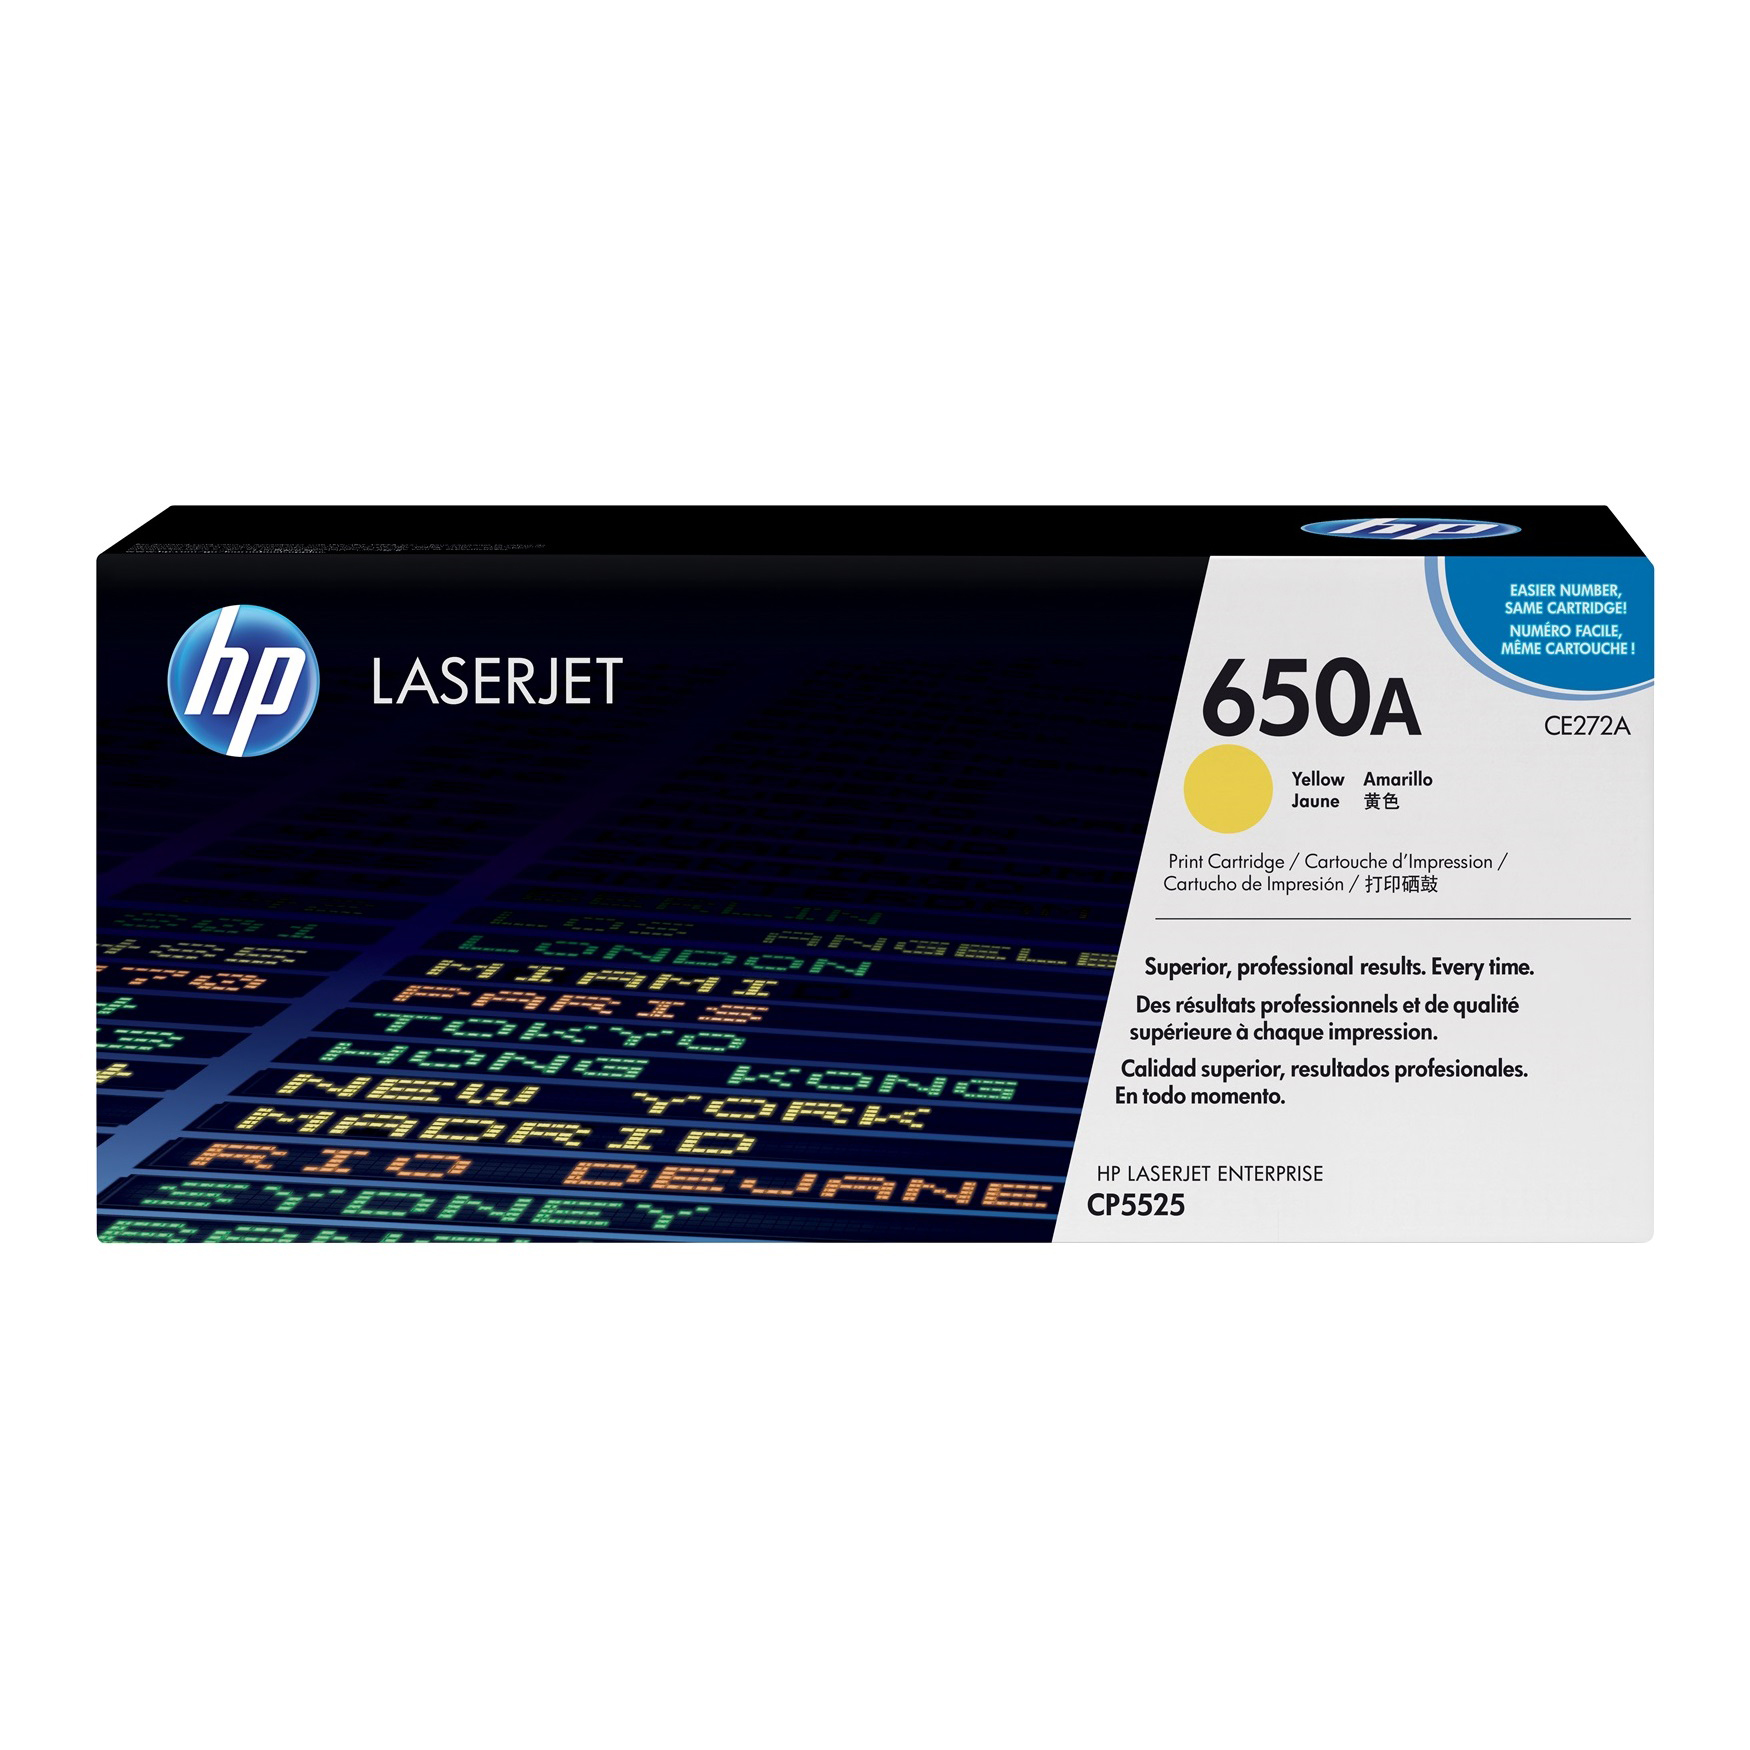 HP 650A Toner Cartridge (CE272A) - Yellow